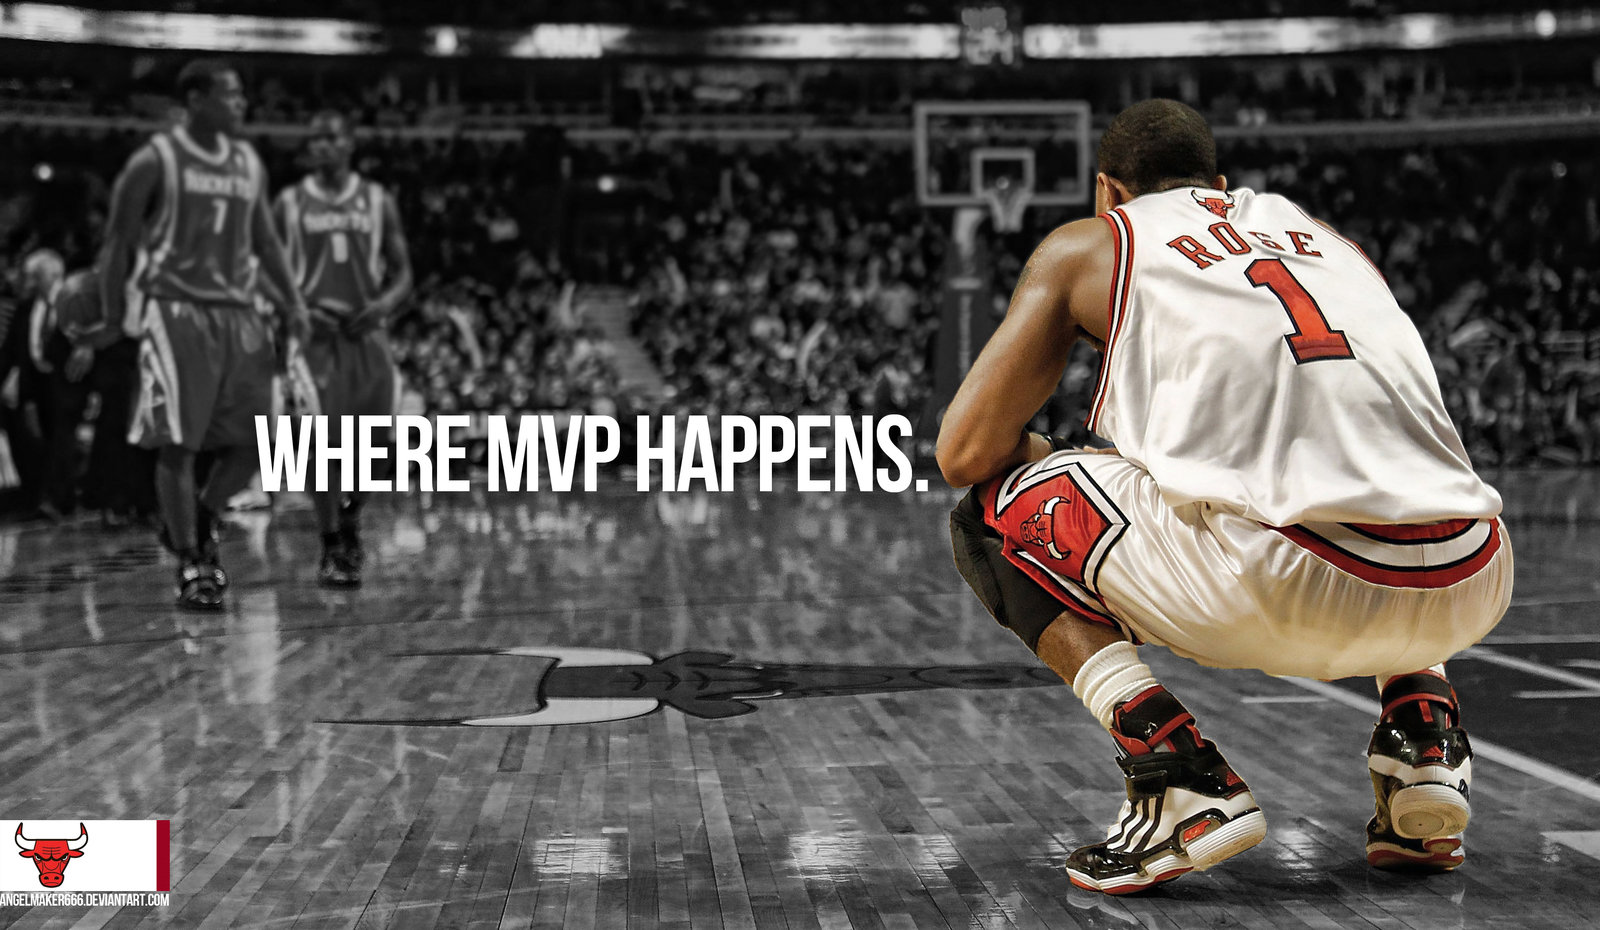 Derrick Rose MVP Wallpaper by IshaanMishra 1600x930